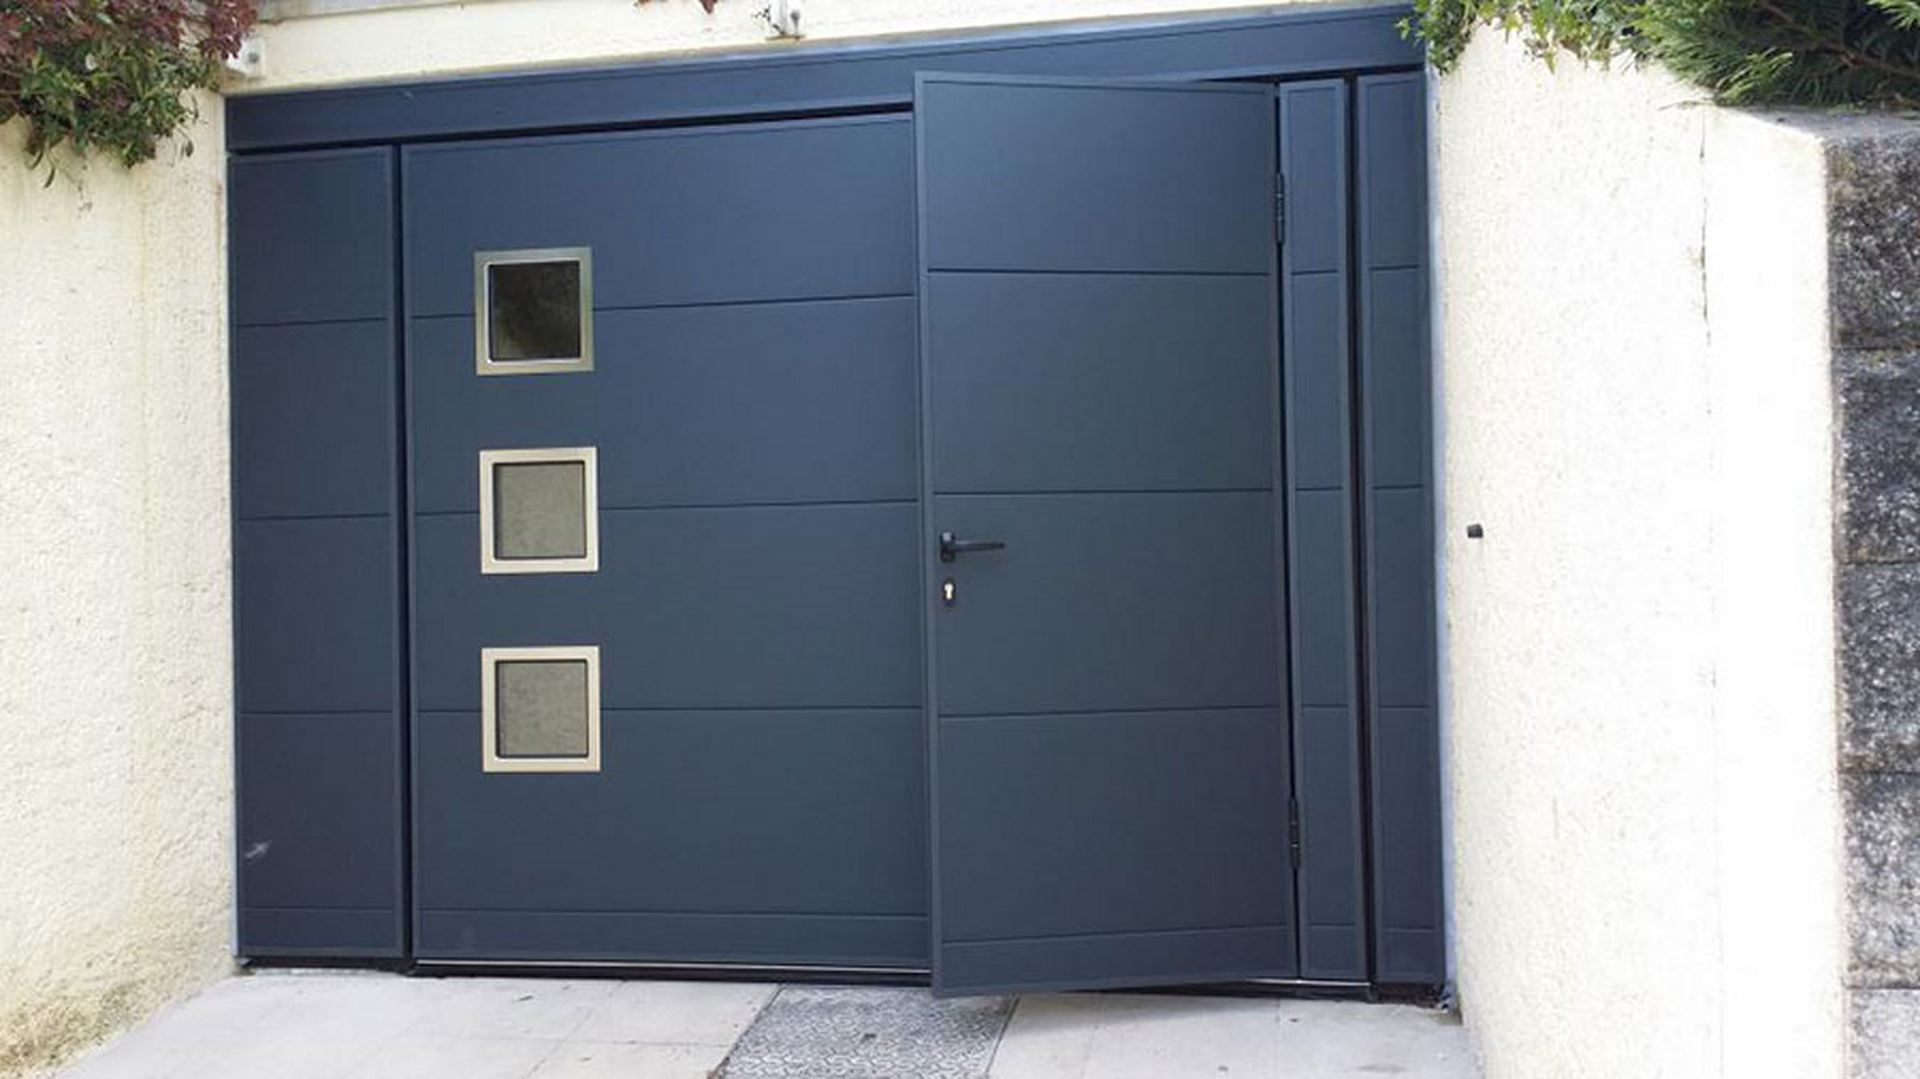 Combien co te une installation de porte de garage abc for Porte de garage avis